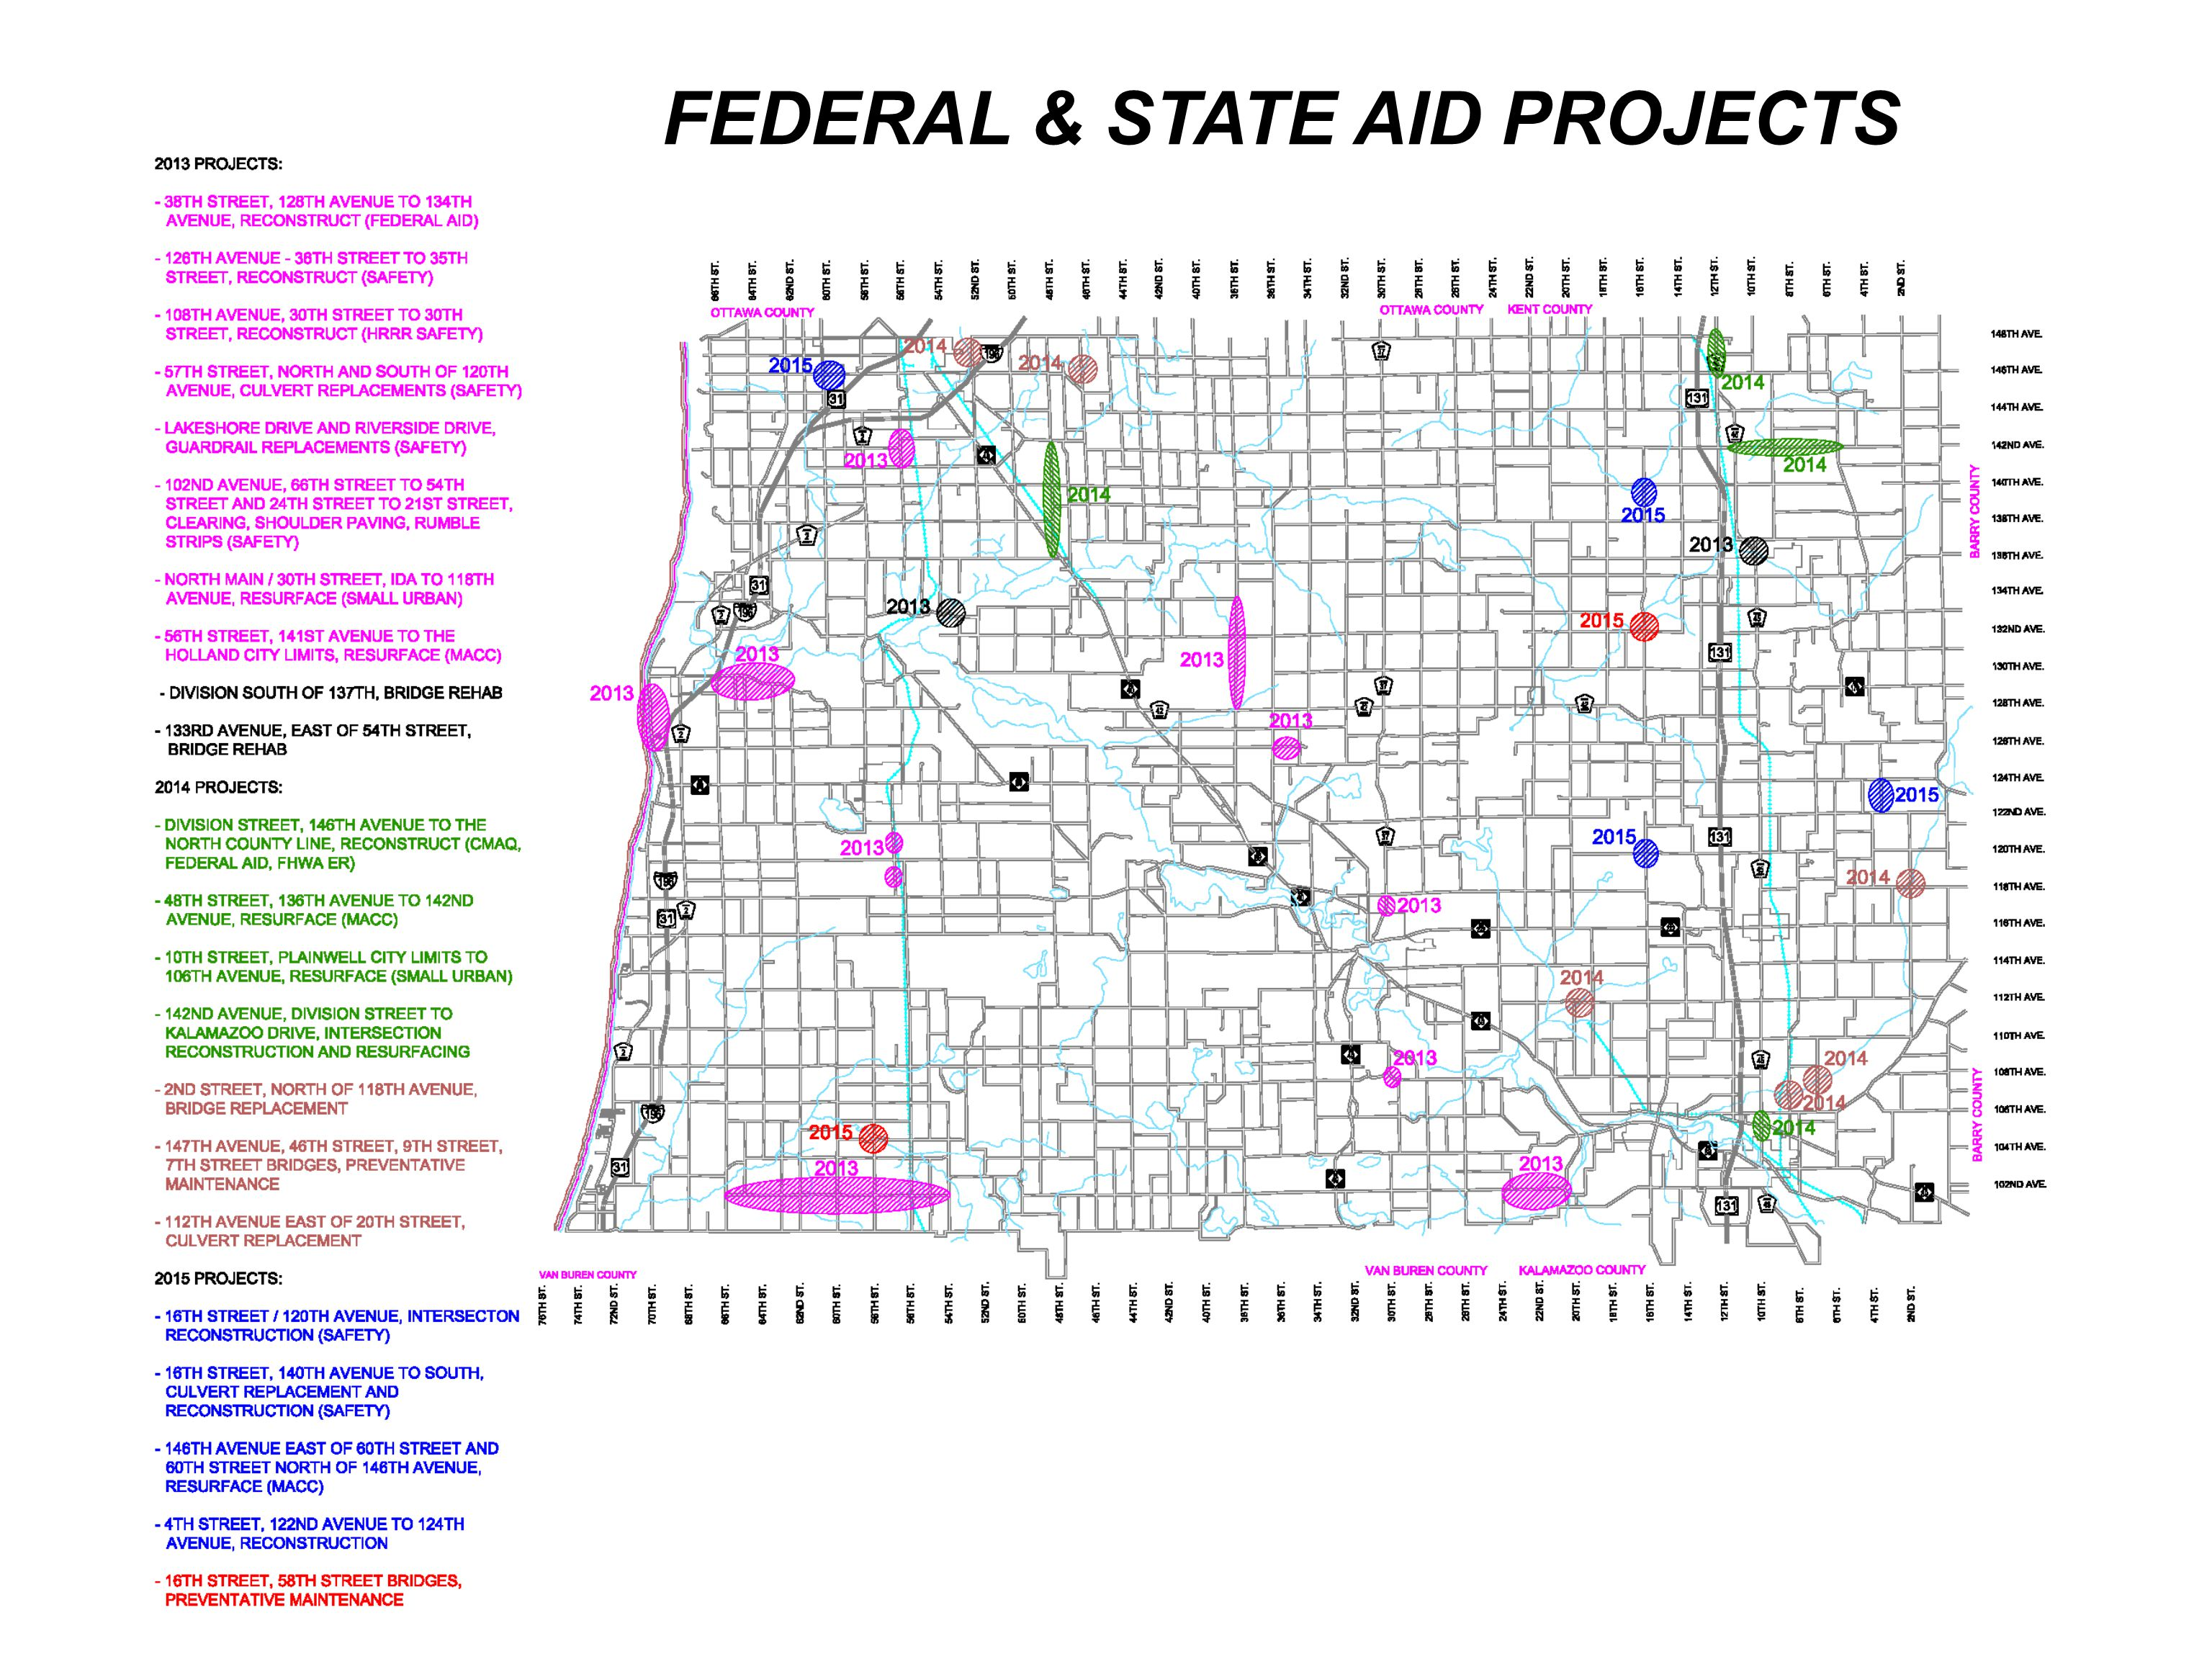 FEDERAL & STATE AID PROJECTS